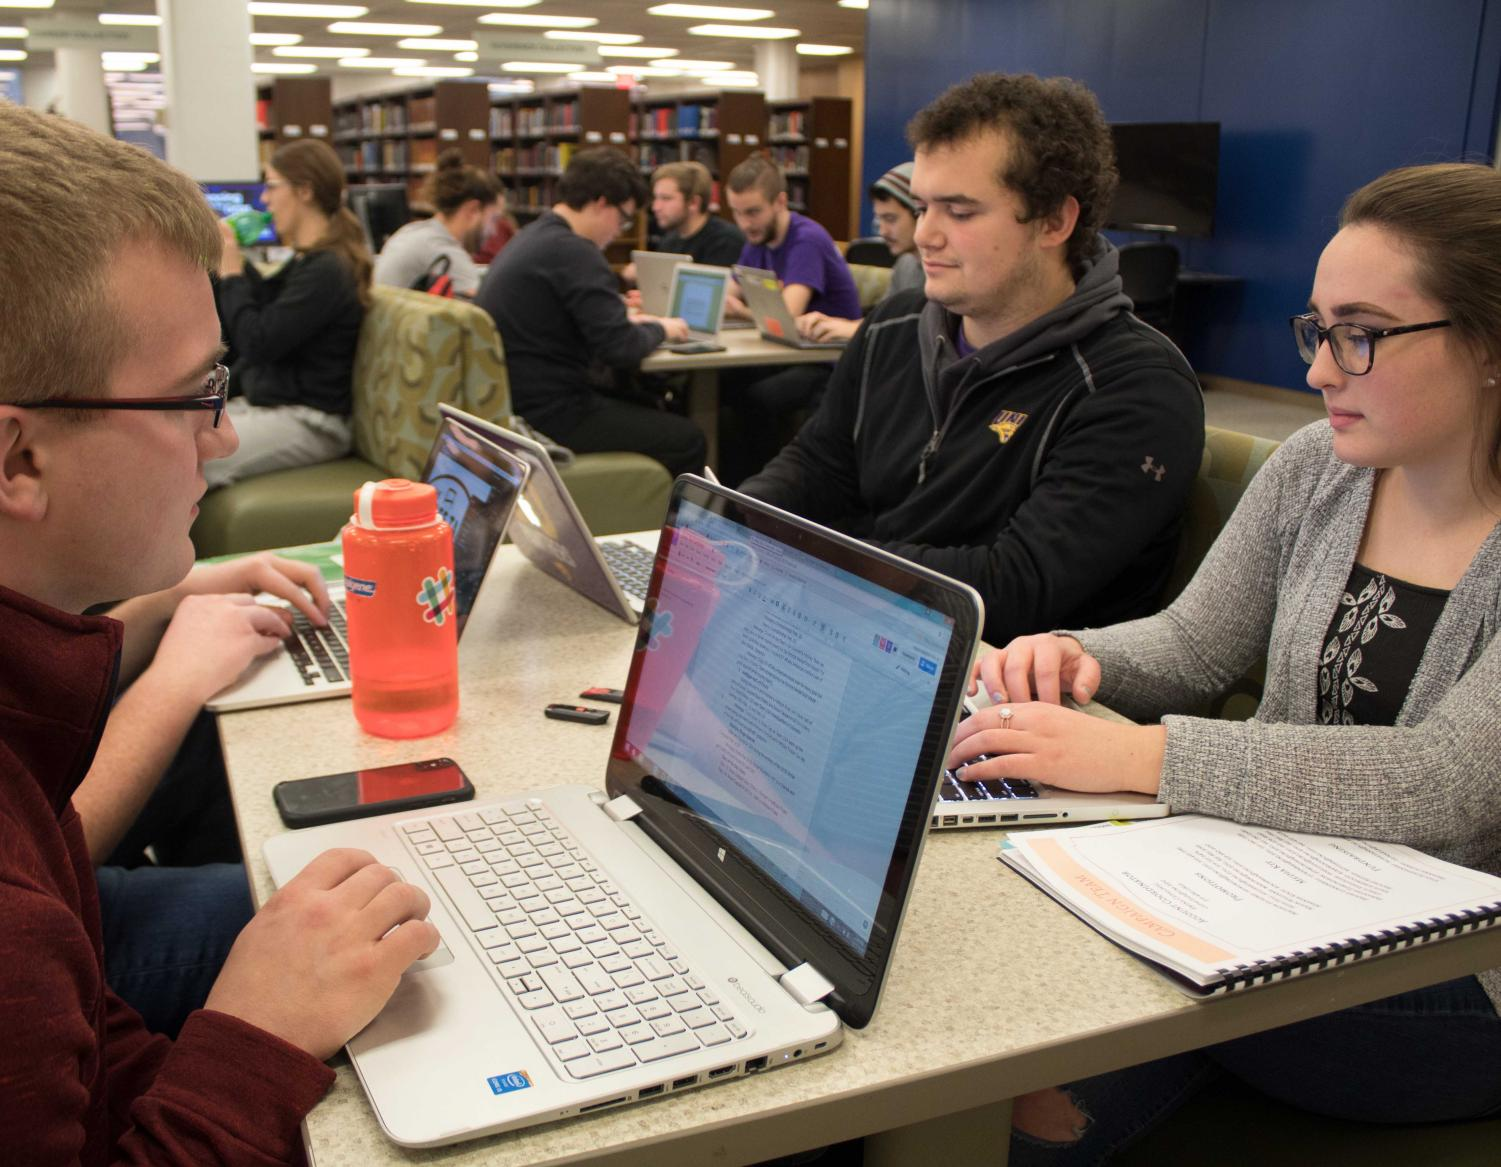 There are numerous resources available to aid students studying on campus during finals week.